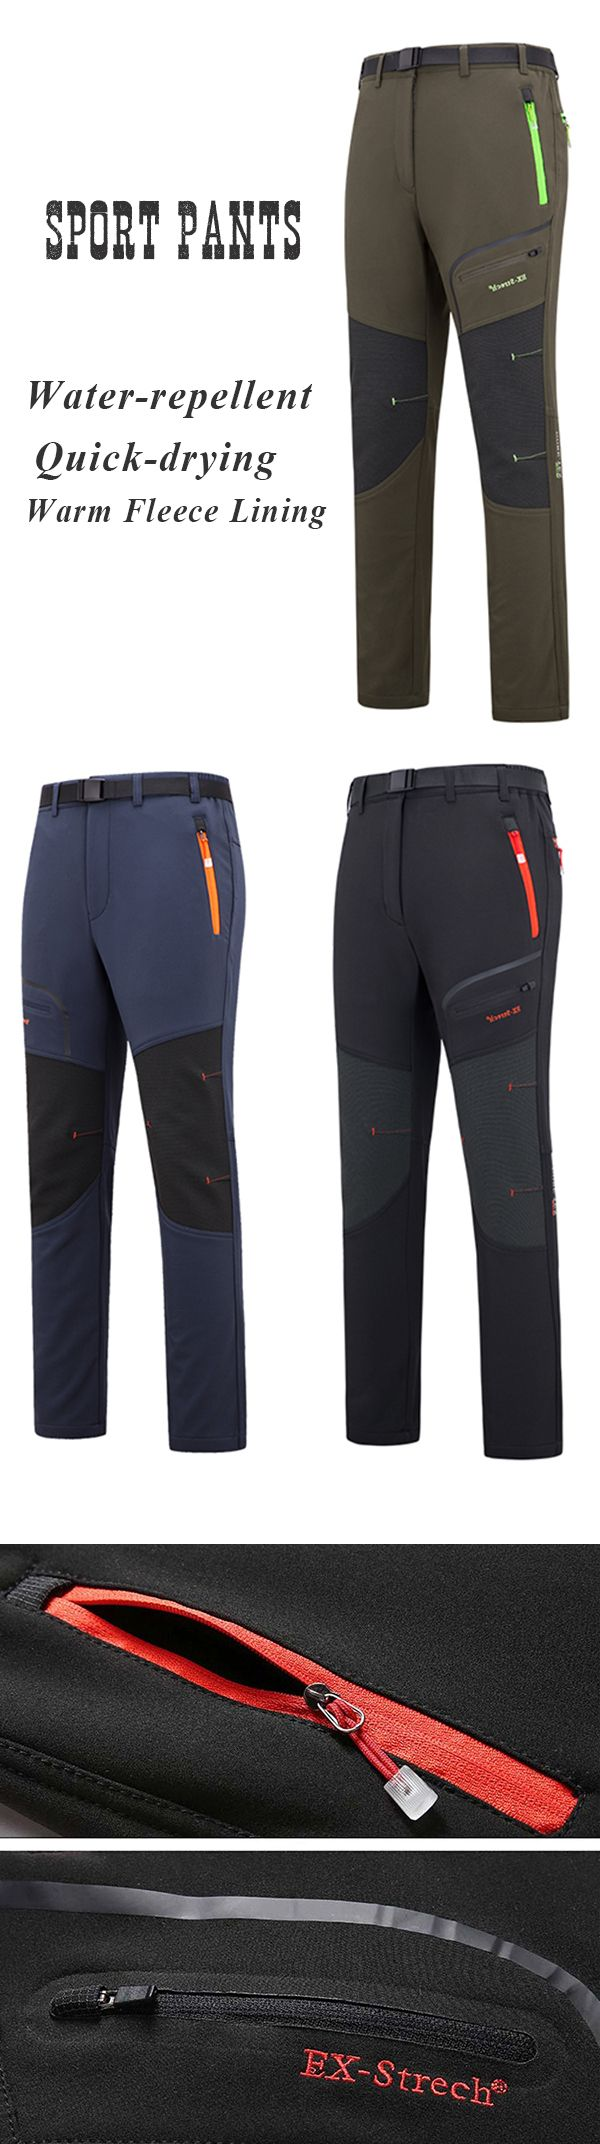 Mens Outdoor Outfit: Fleece Lining Sport Pants:  Water-repellent / Quick-drying